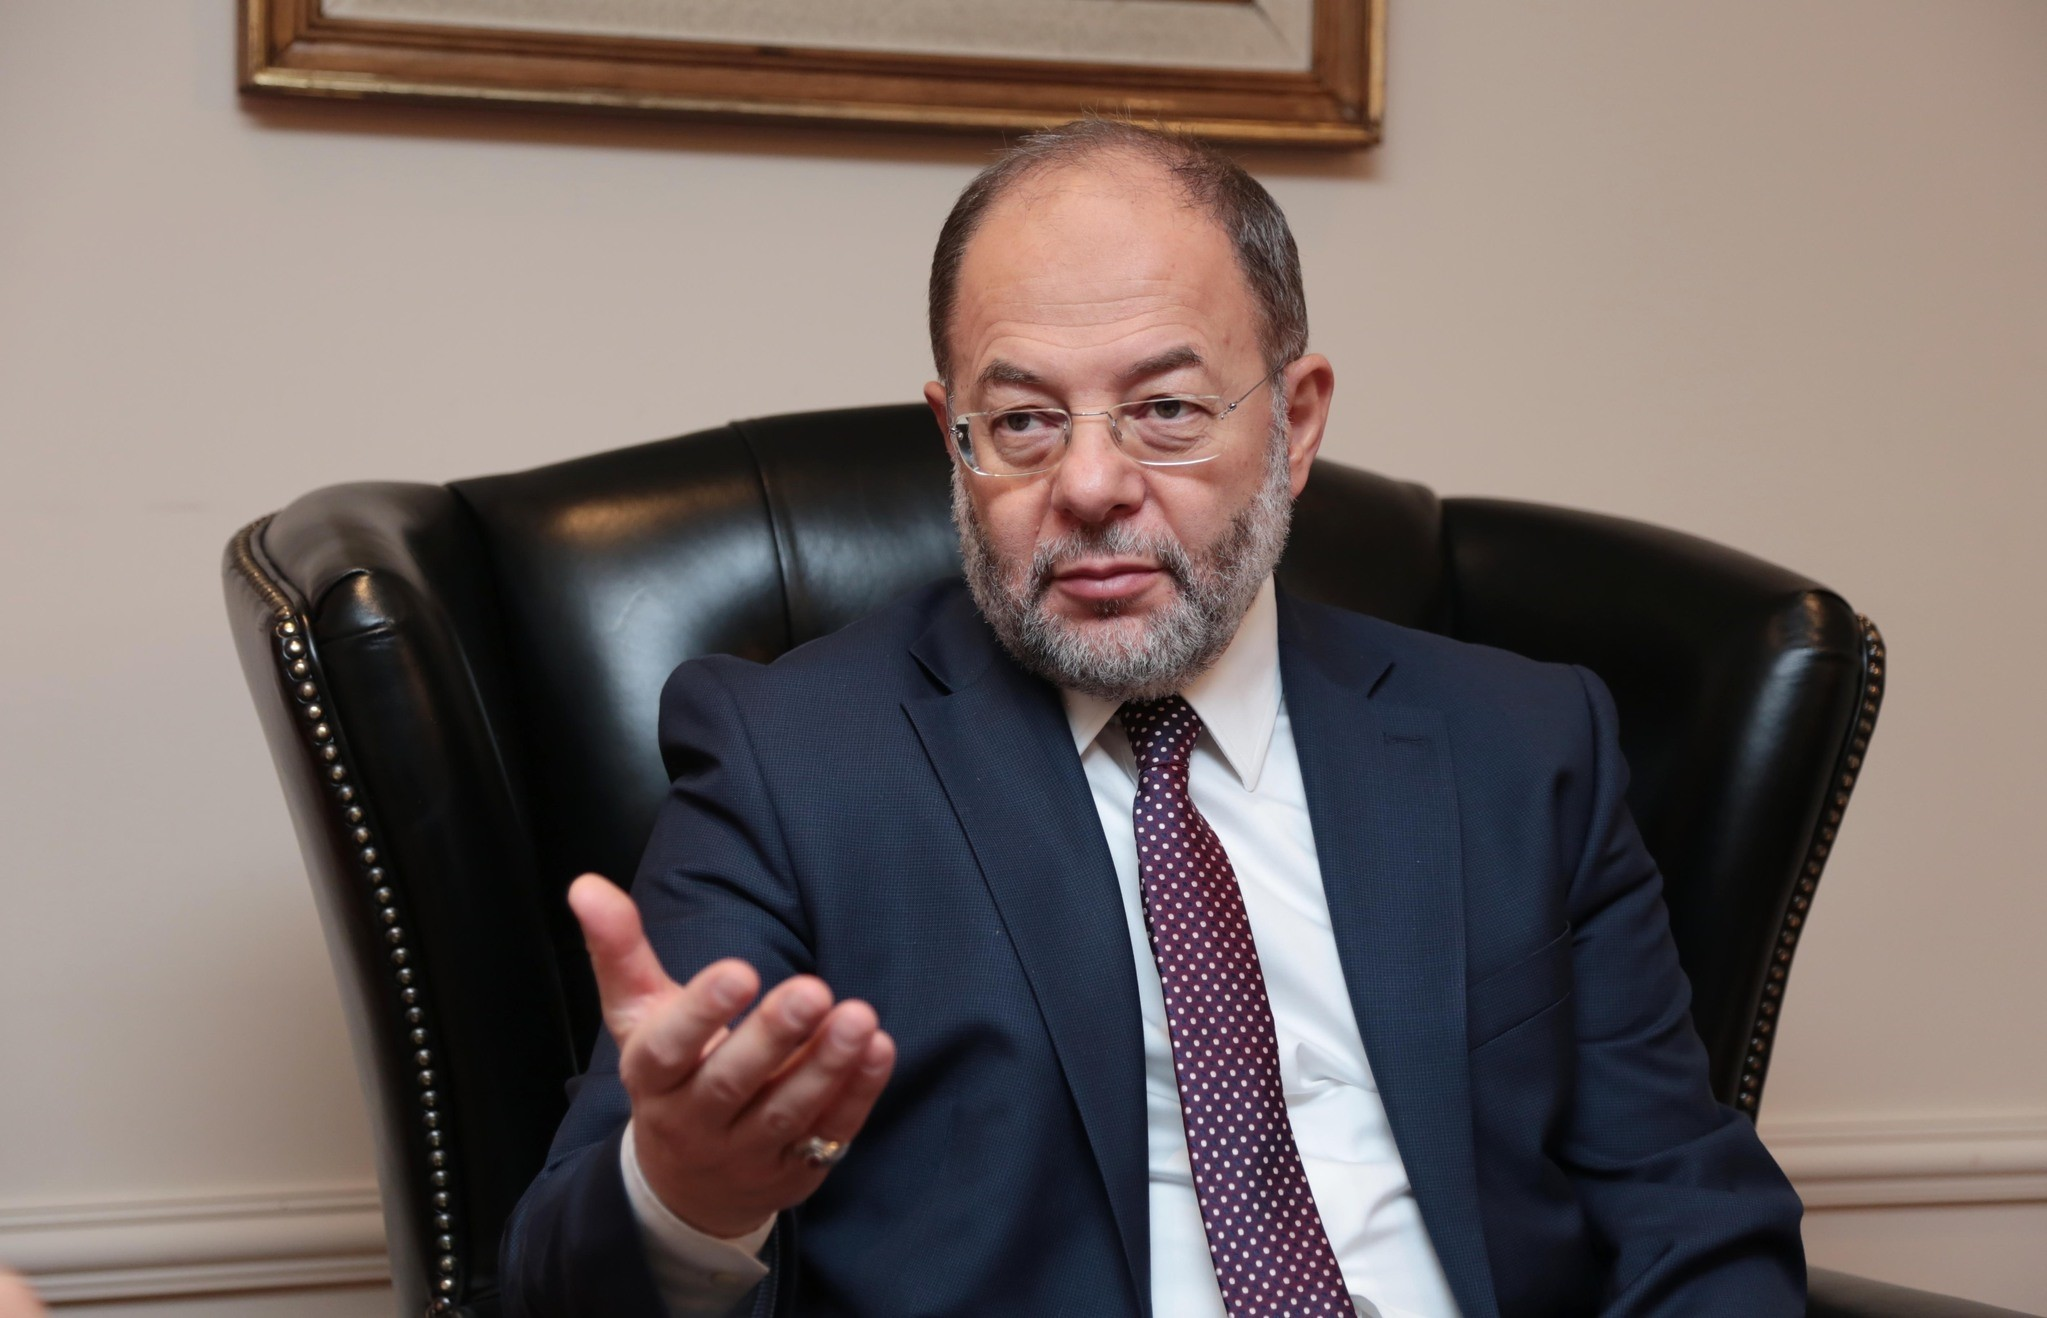 Deputy Prime Minister Akdau011f said that the package implements many regulations that are to facilitate and incentivize investorsu2019 initiatives in Turkey.